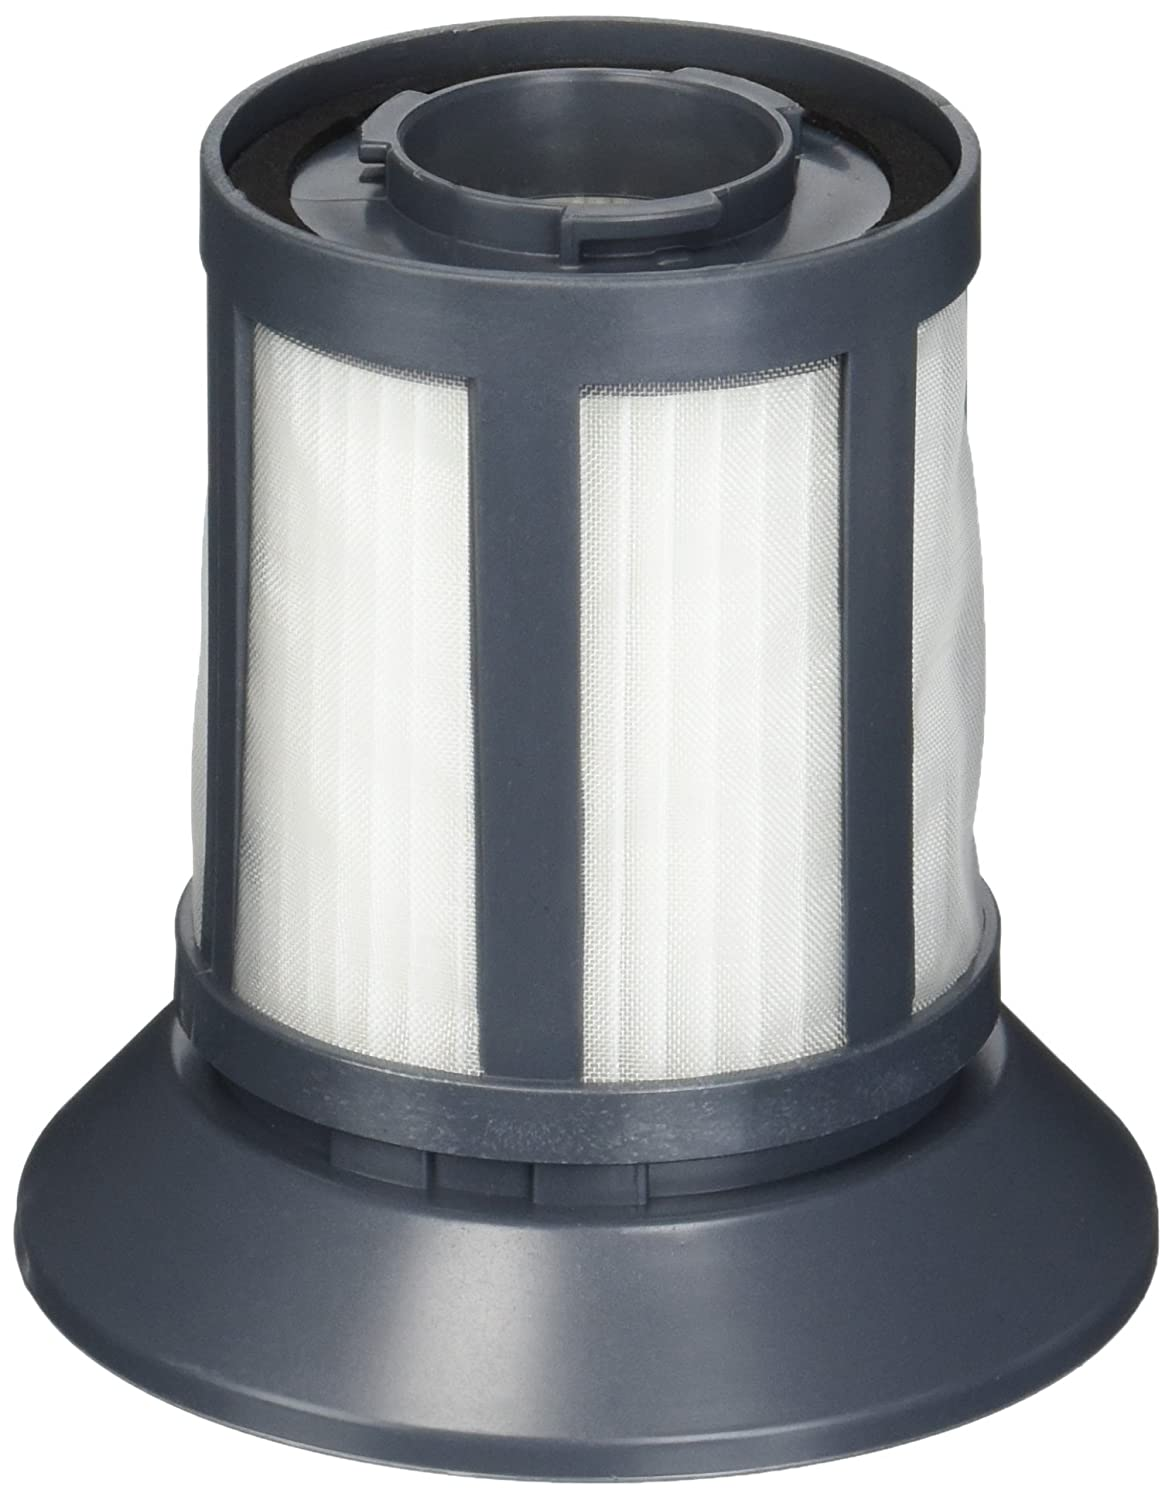 Think Crucial Replacement for Bissell Dirt Bin Filter Fits Zing Bagless Canister Vacuum, Compatible With Part # 2031532